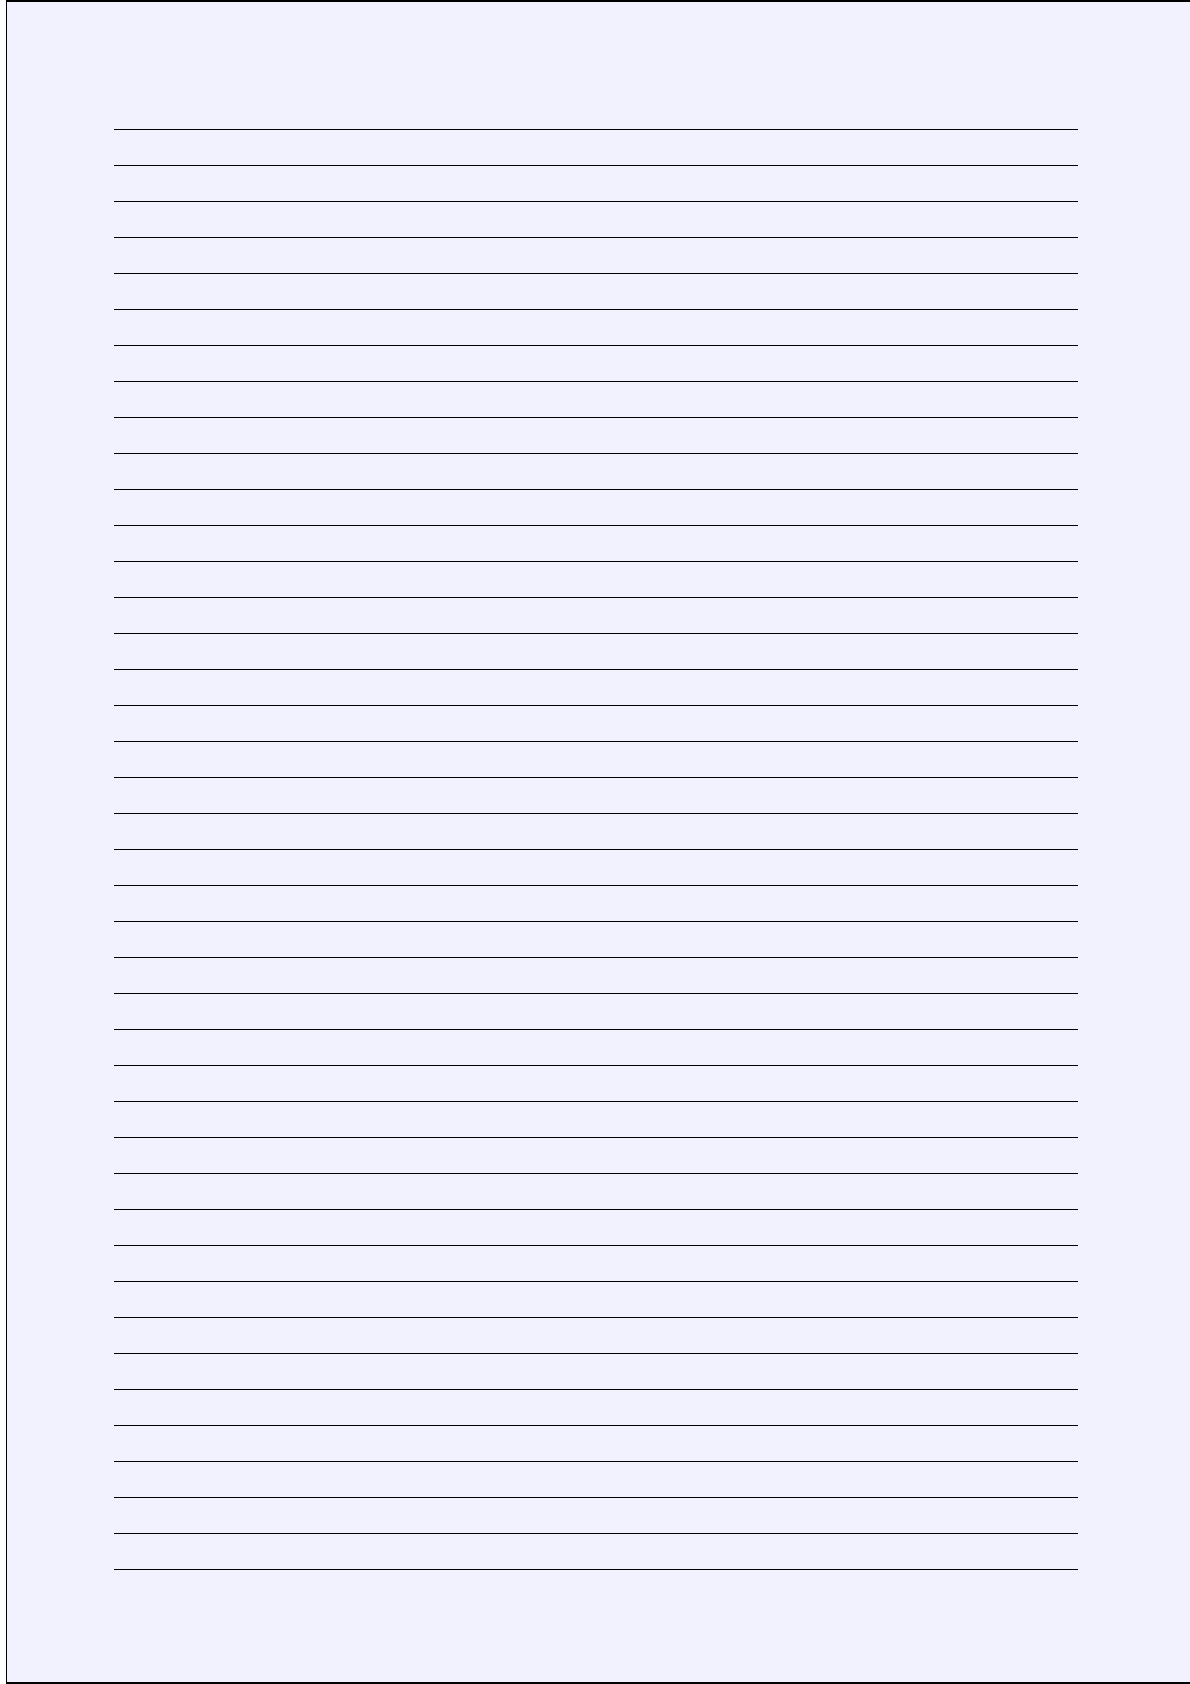 A4 Size Lined Paper with Narrow Black Lines - Pale Blue ...